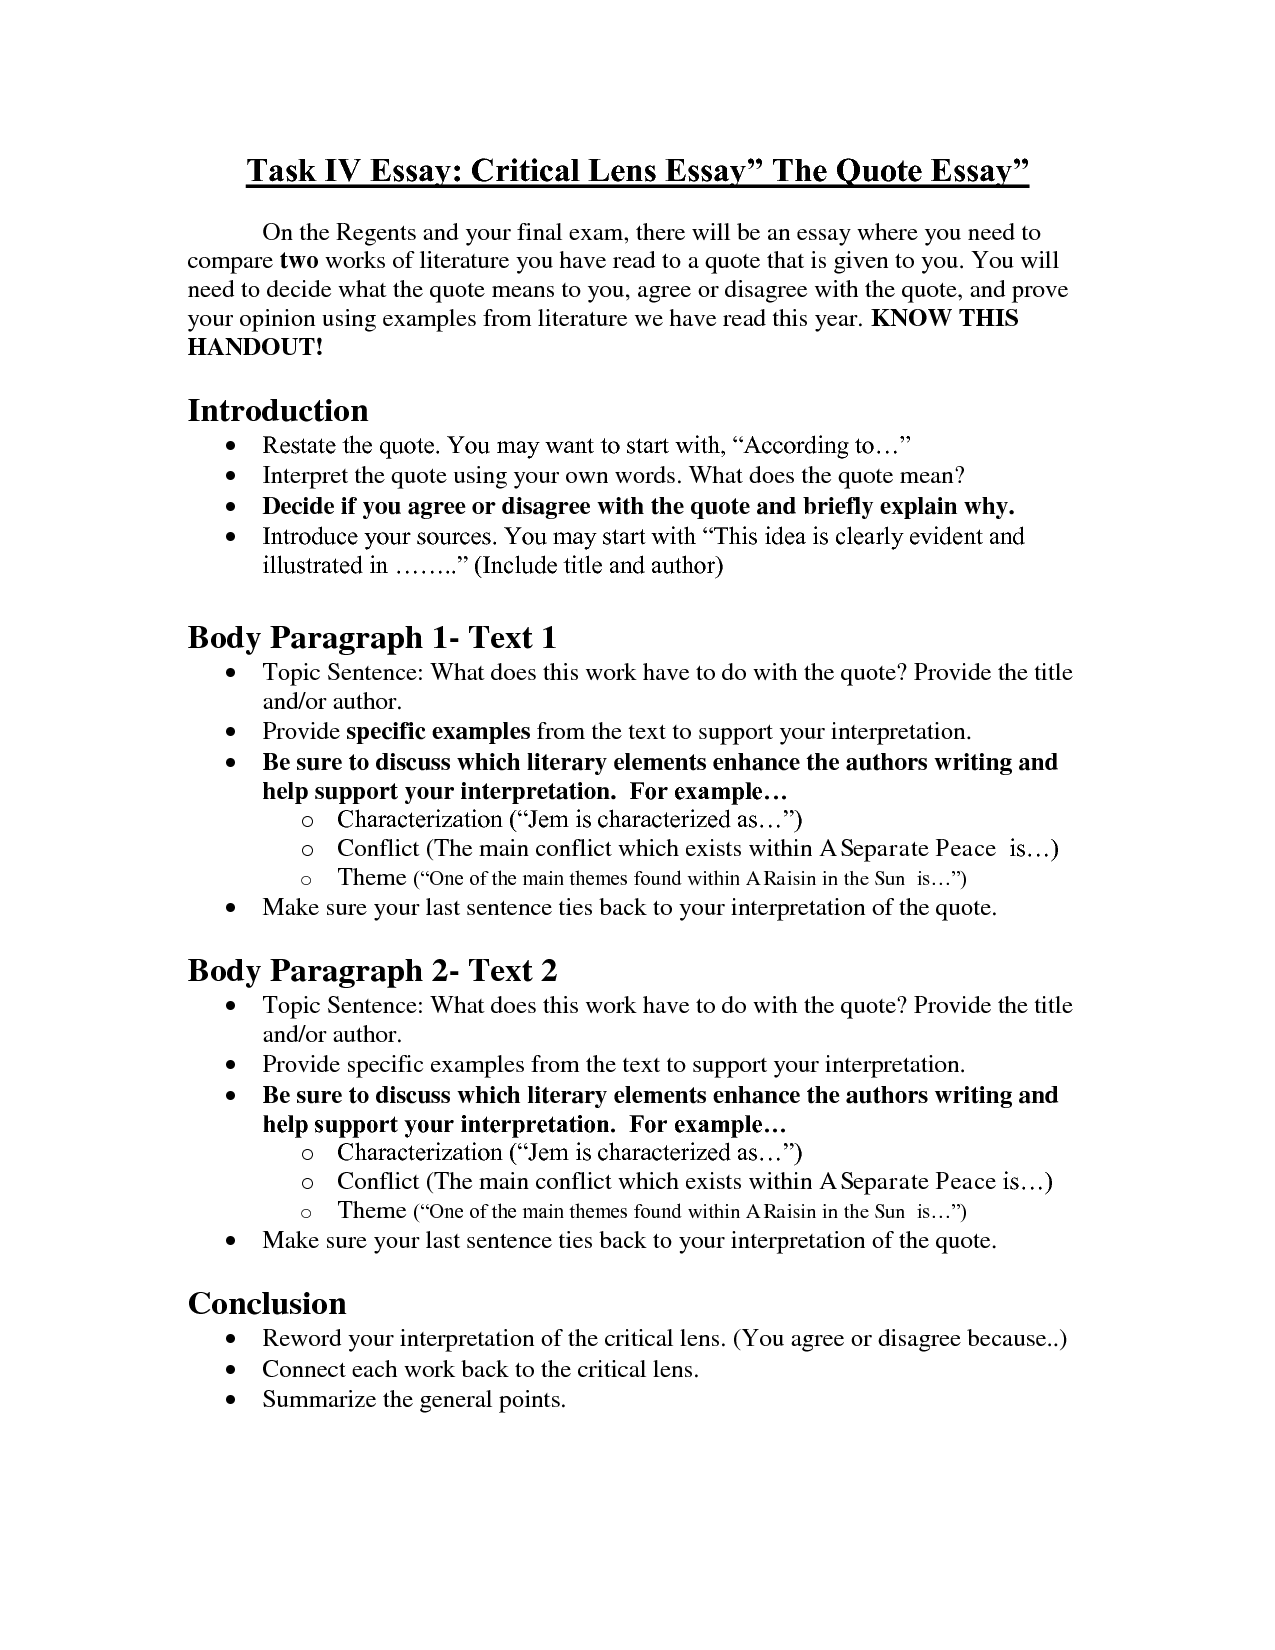 sat essay outline persuasive speech sample persuasive persuasive essay persuasive speech sample persuasive persuasive essay outline on ipnodns